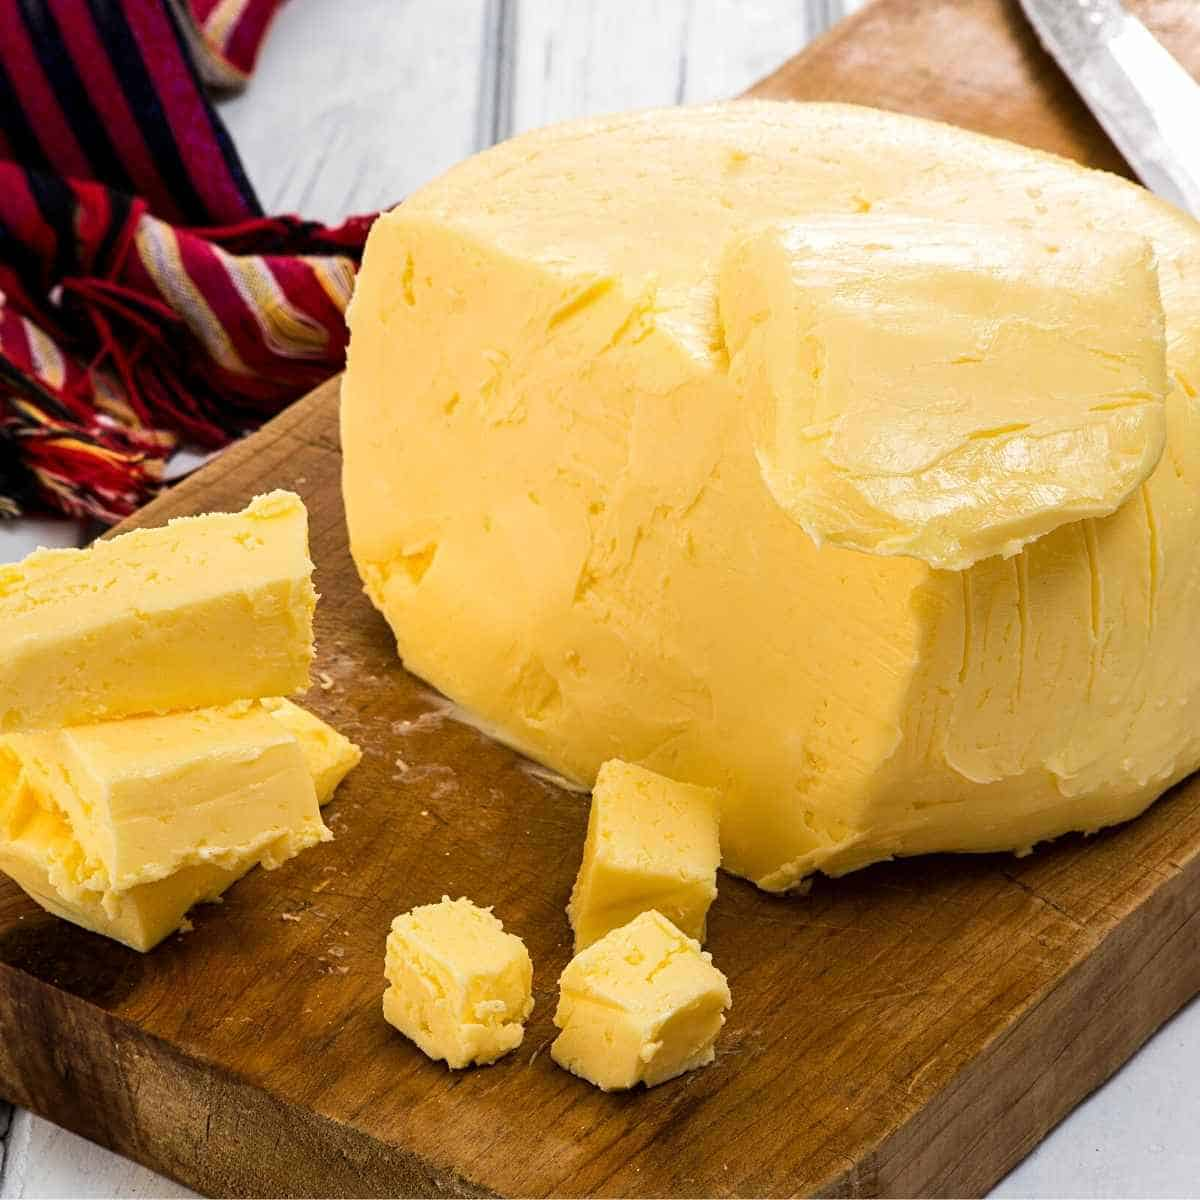 ball of butter with pieces - Eating Sticks of Butter on Keto: A Nutritionist and a Dr. Way In